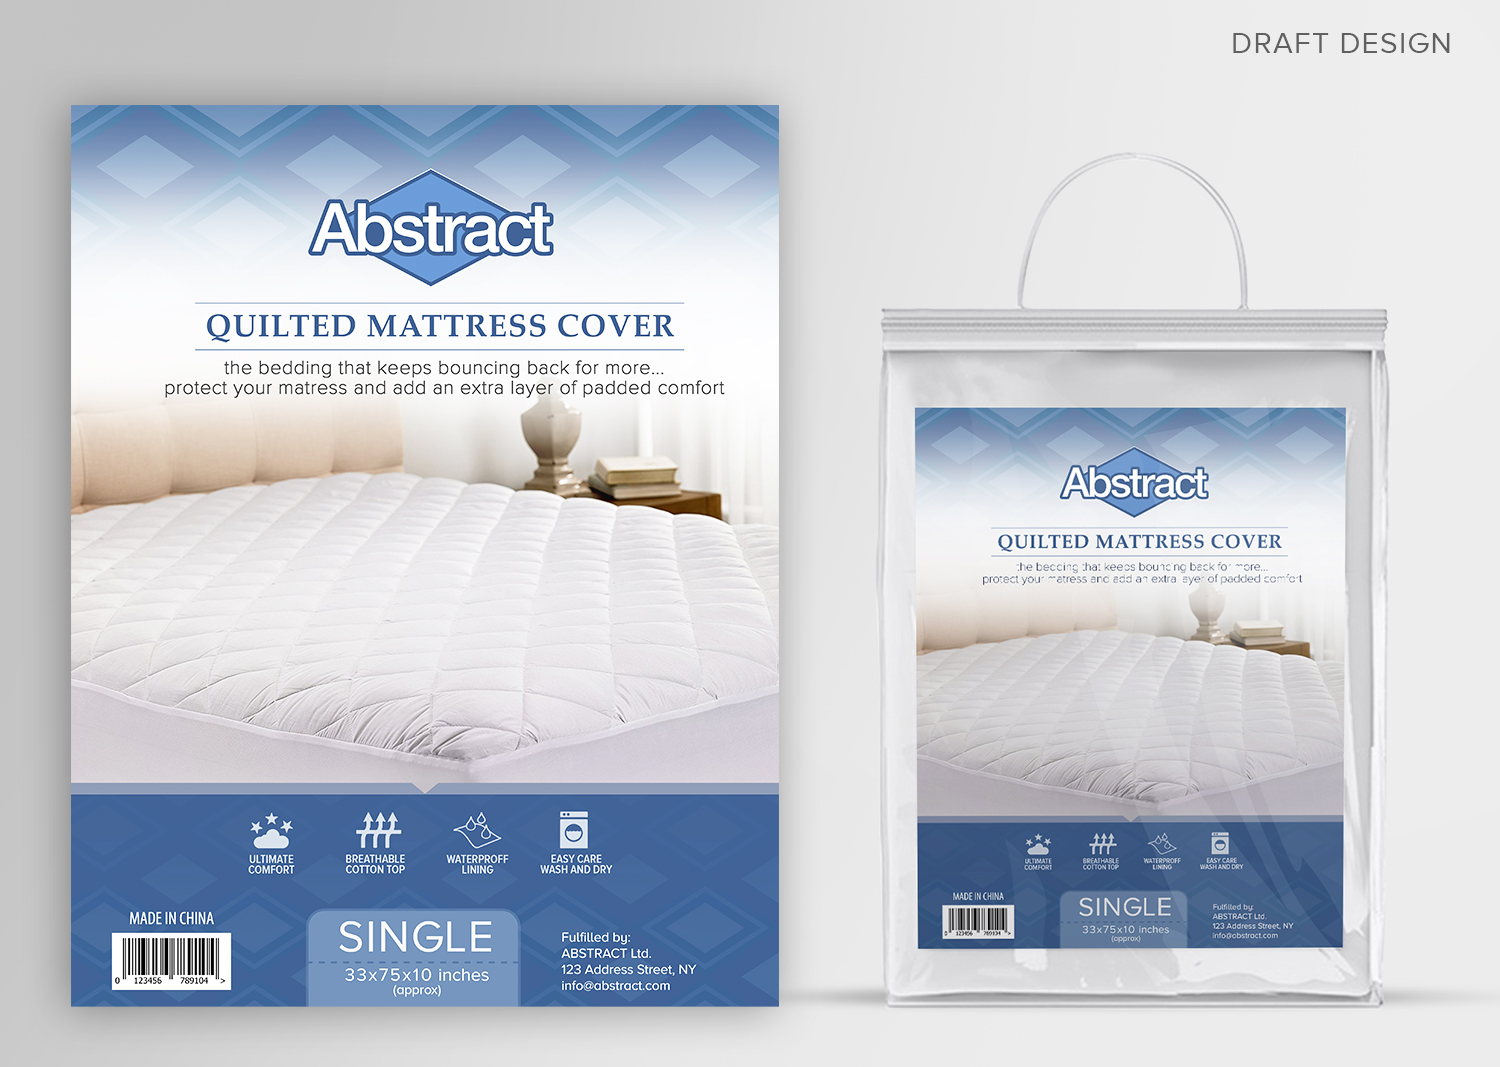 Elegant Modern Packaging Design For A Company By Mdesigns Design 17819388